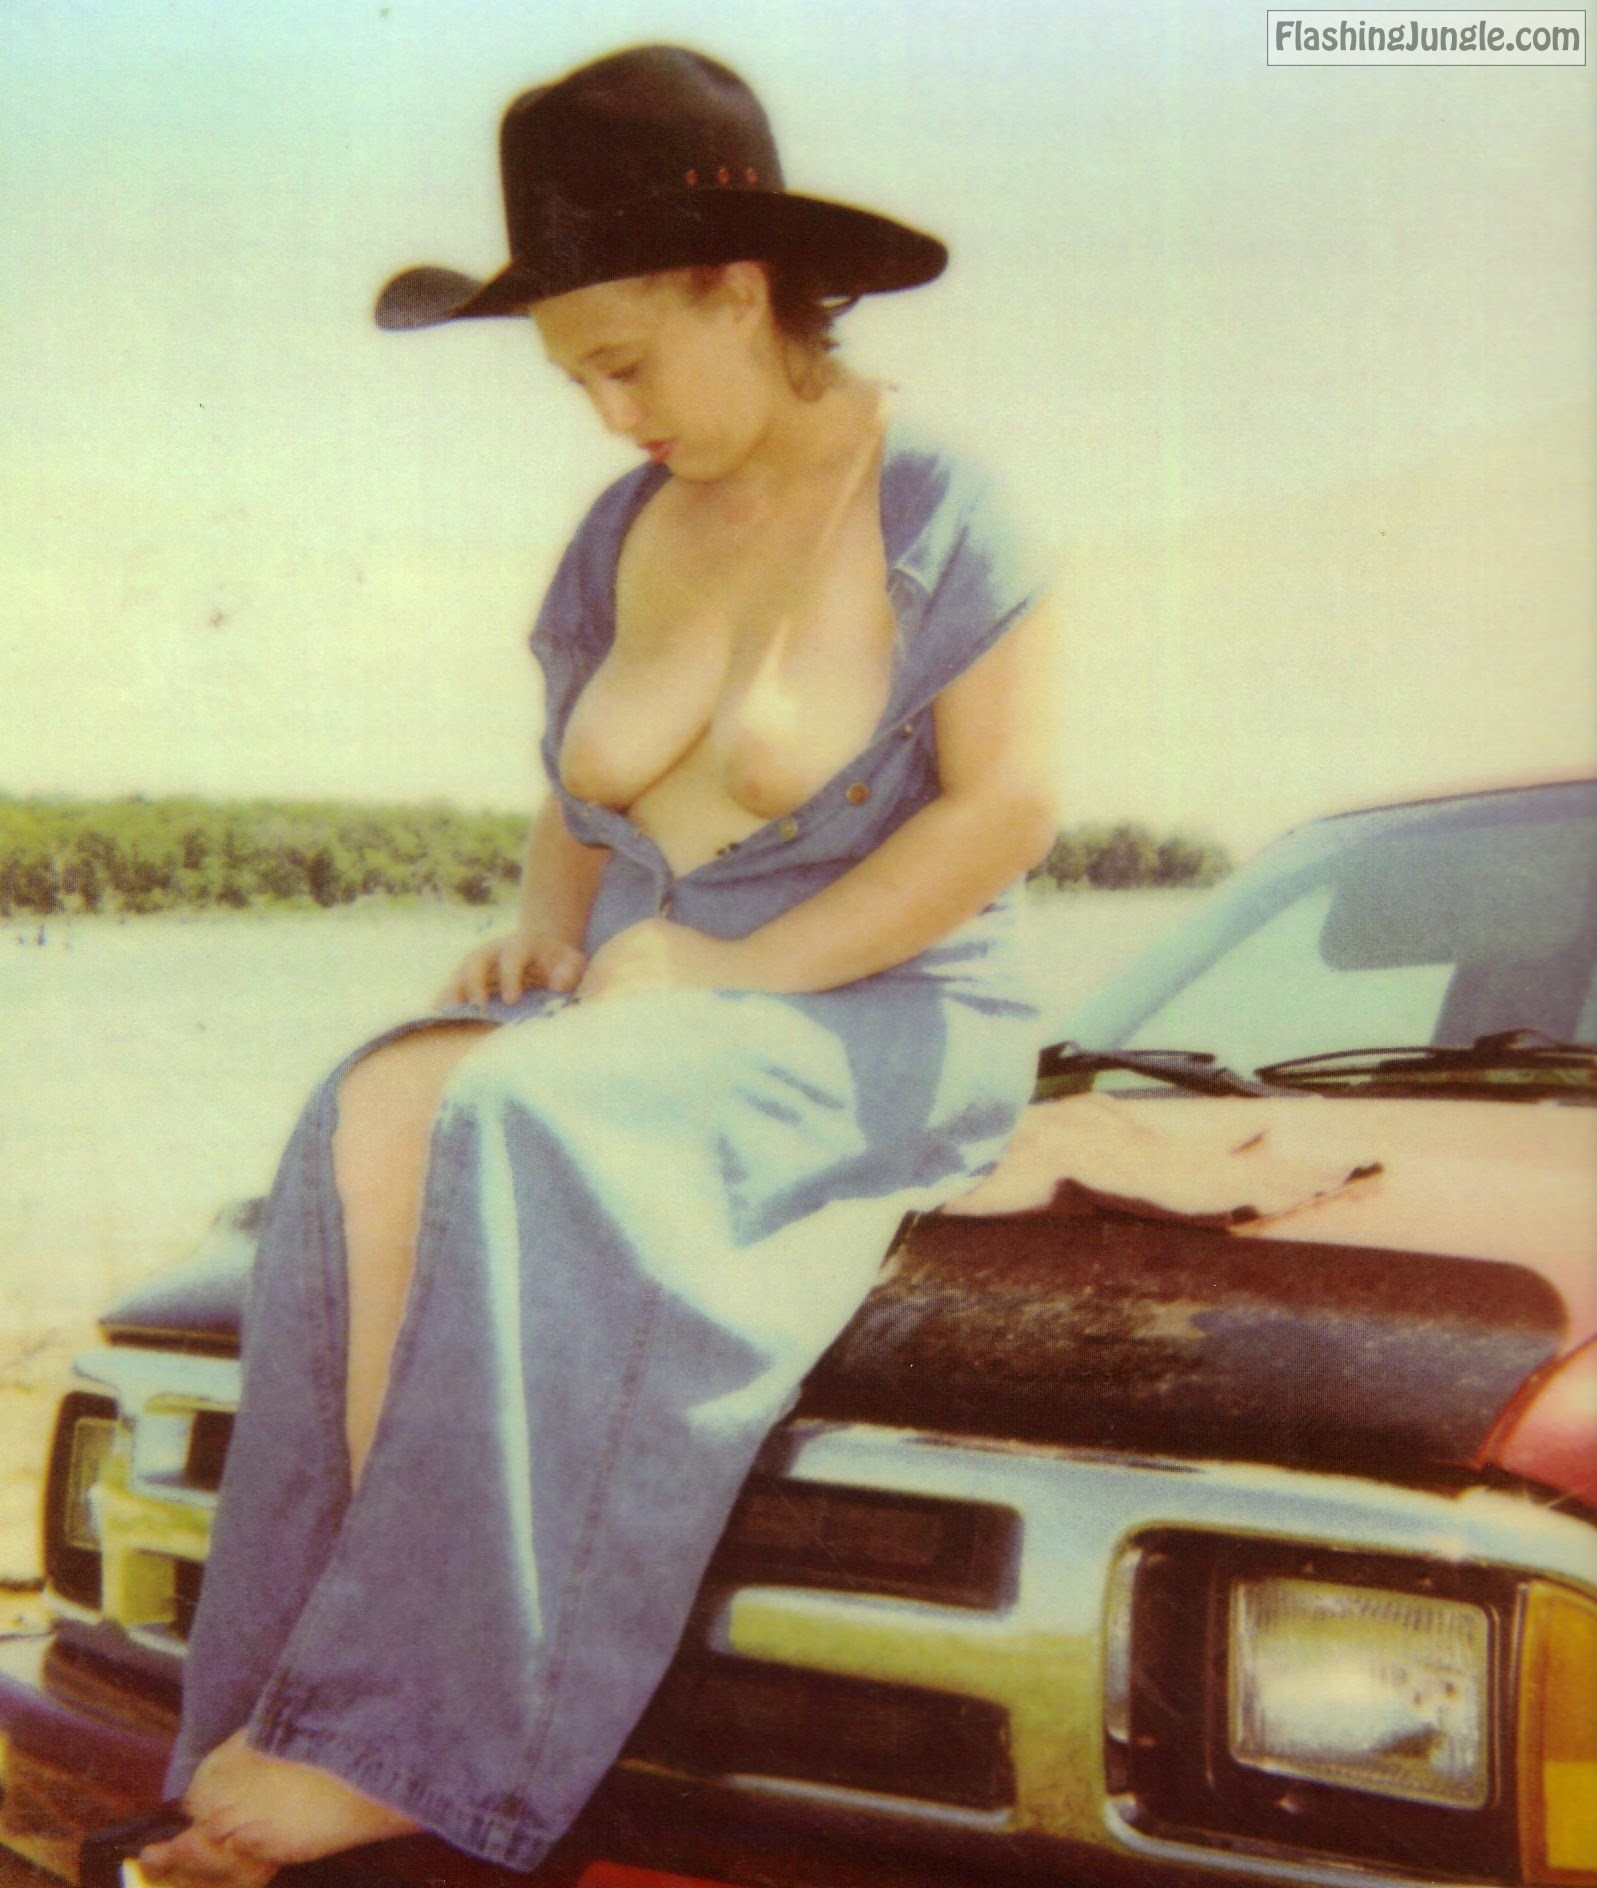 Braless CowGirl flashing titties